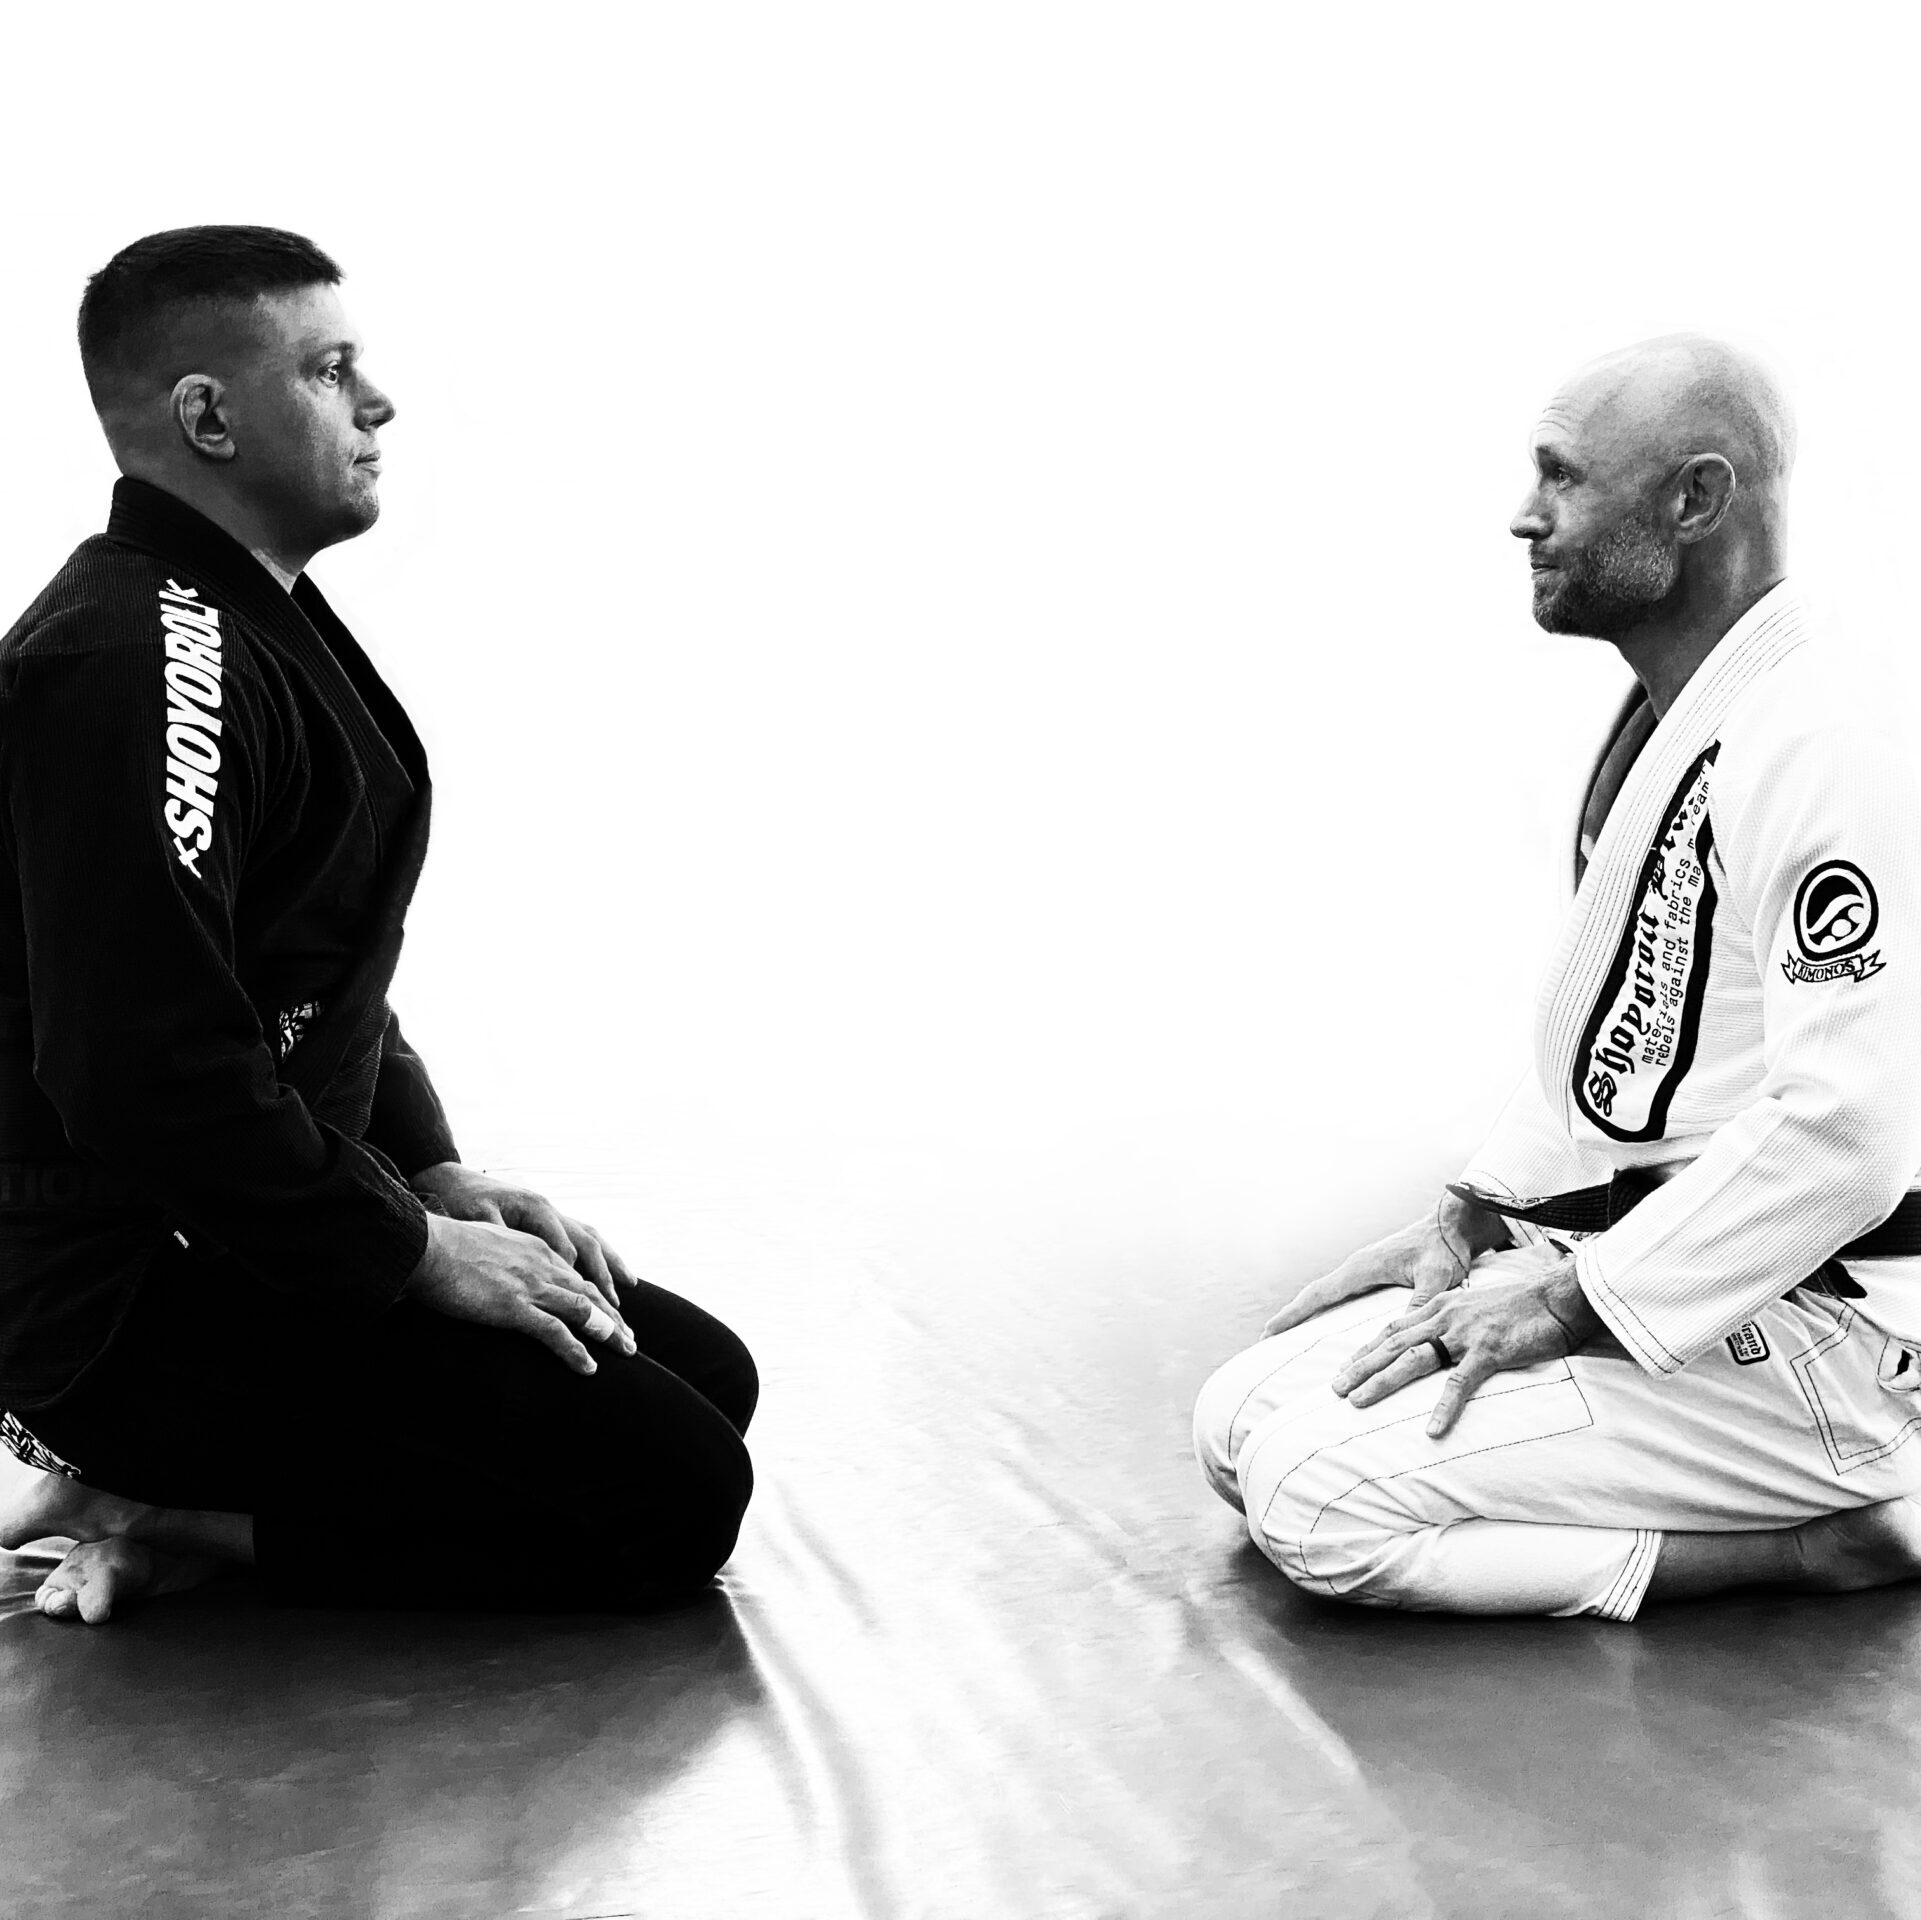 Deep Water Brazilian Jiu Jitsu